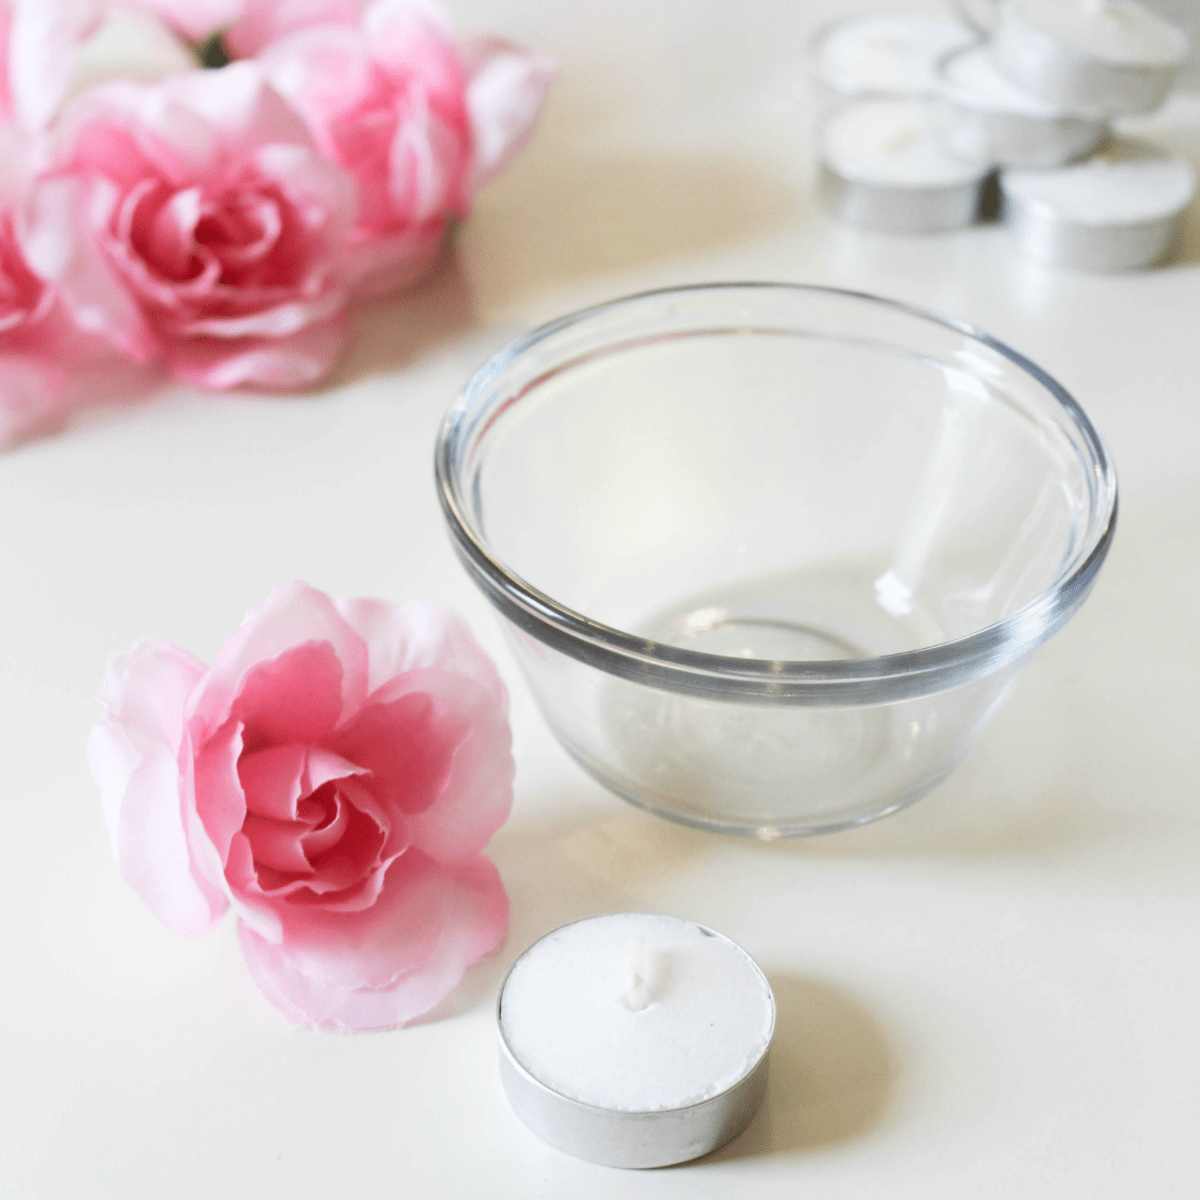 Pretty in Pink Spring Floating Candle Centerpiece – At Home With Zan